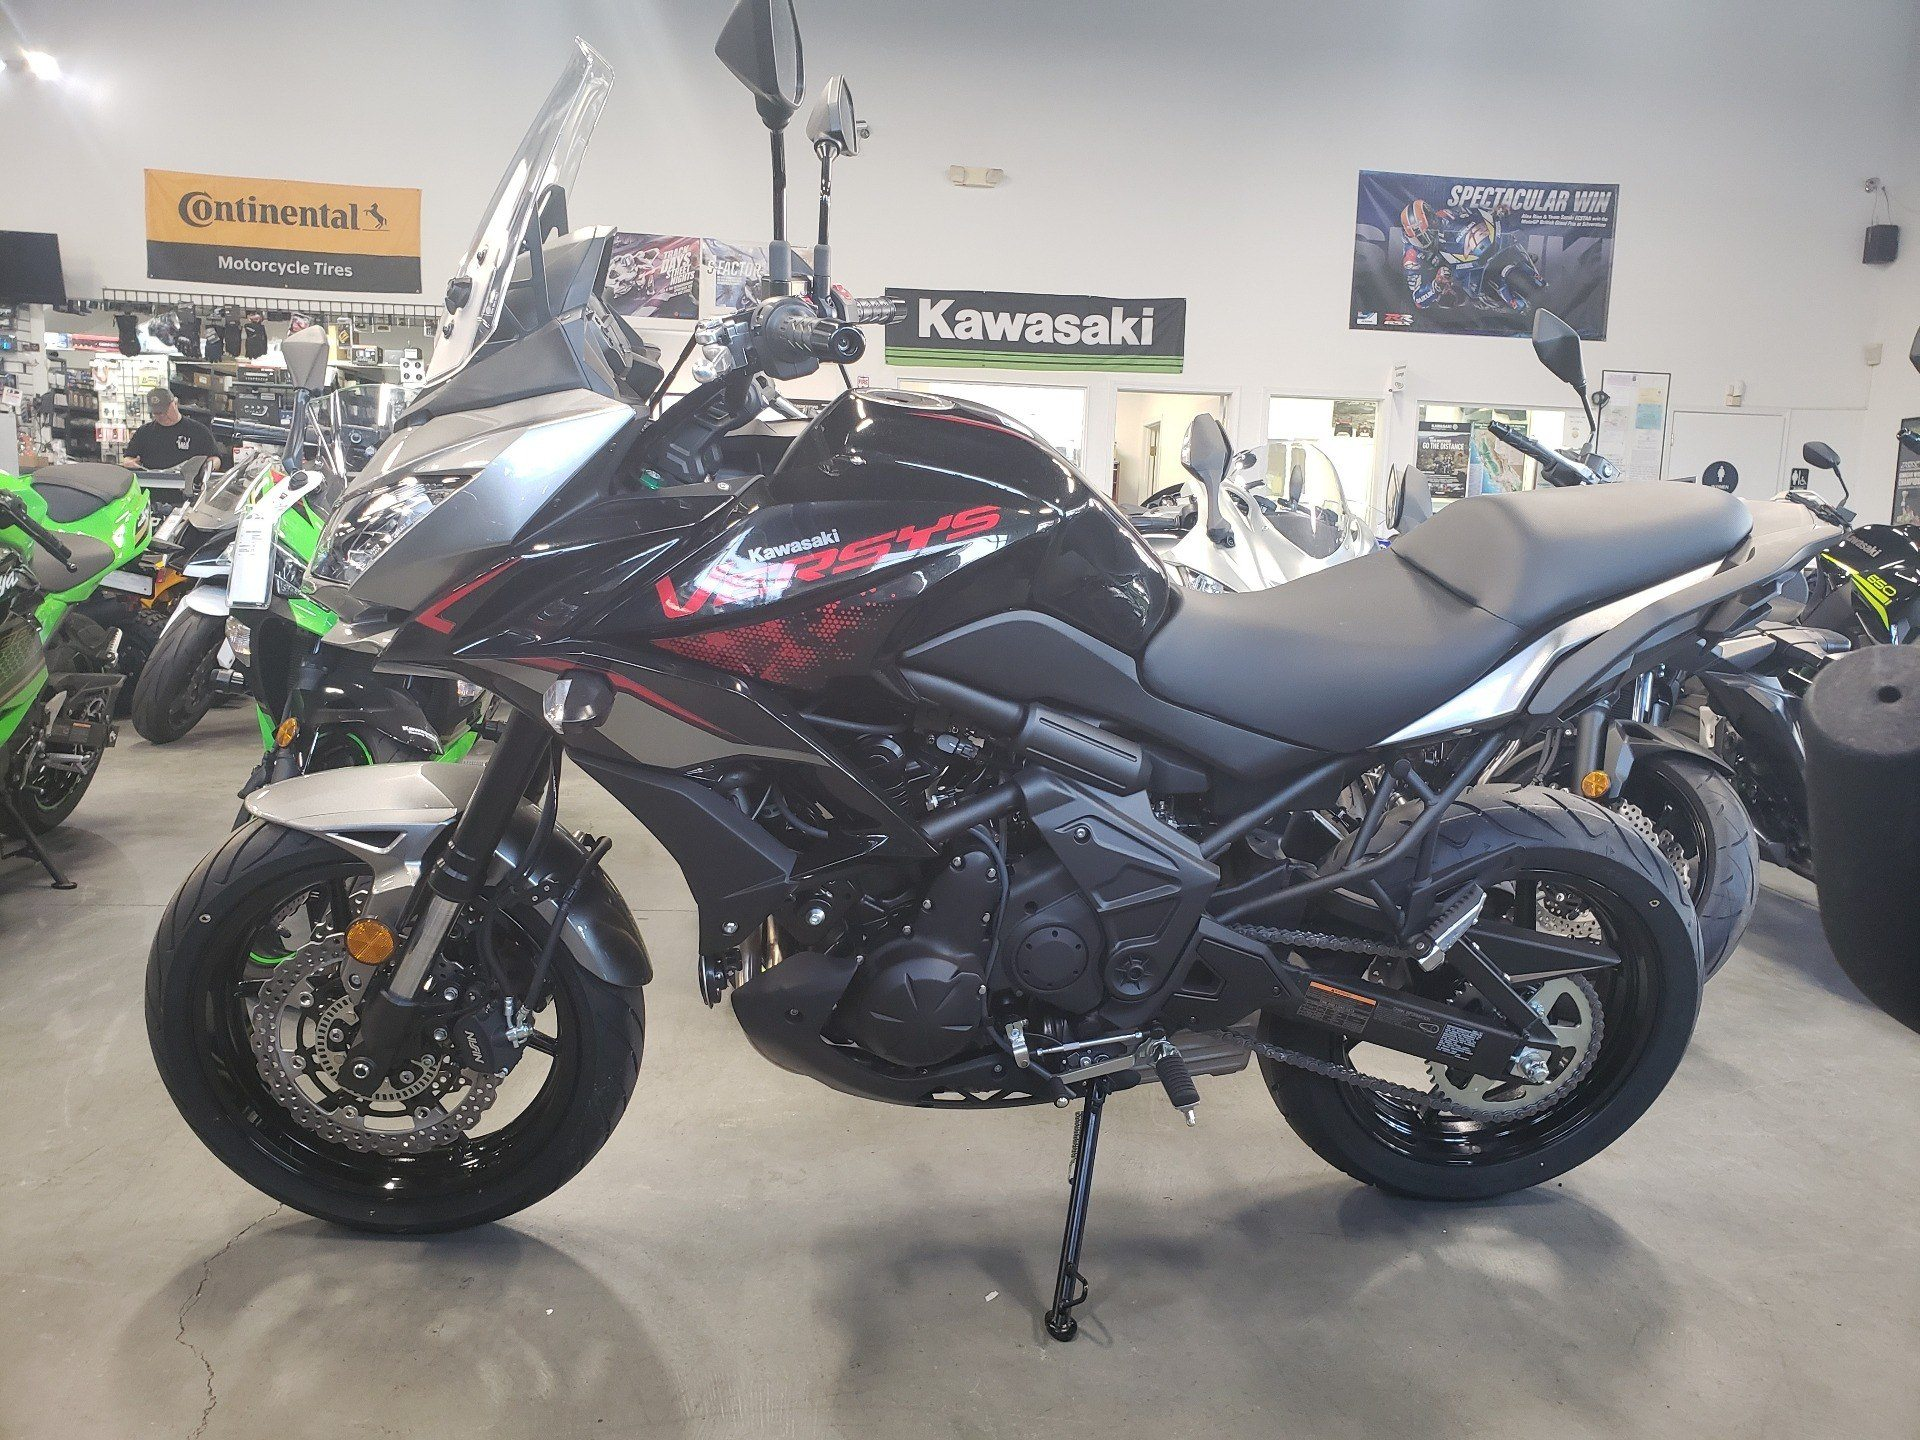 2021 Kawasaki Versys 650 ABS in Vallejo, California - Photo 1